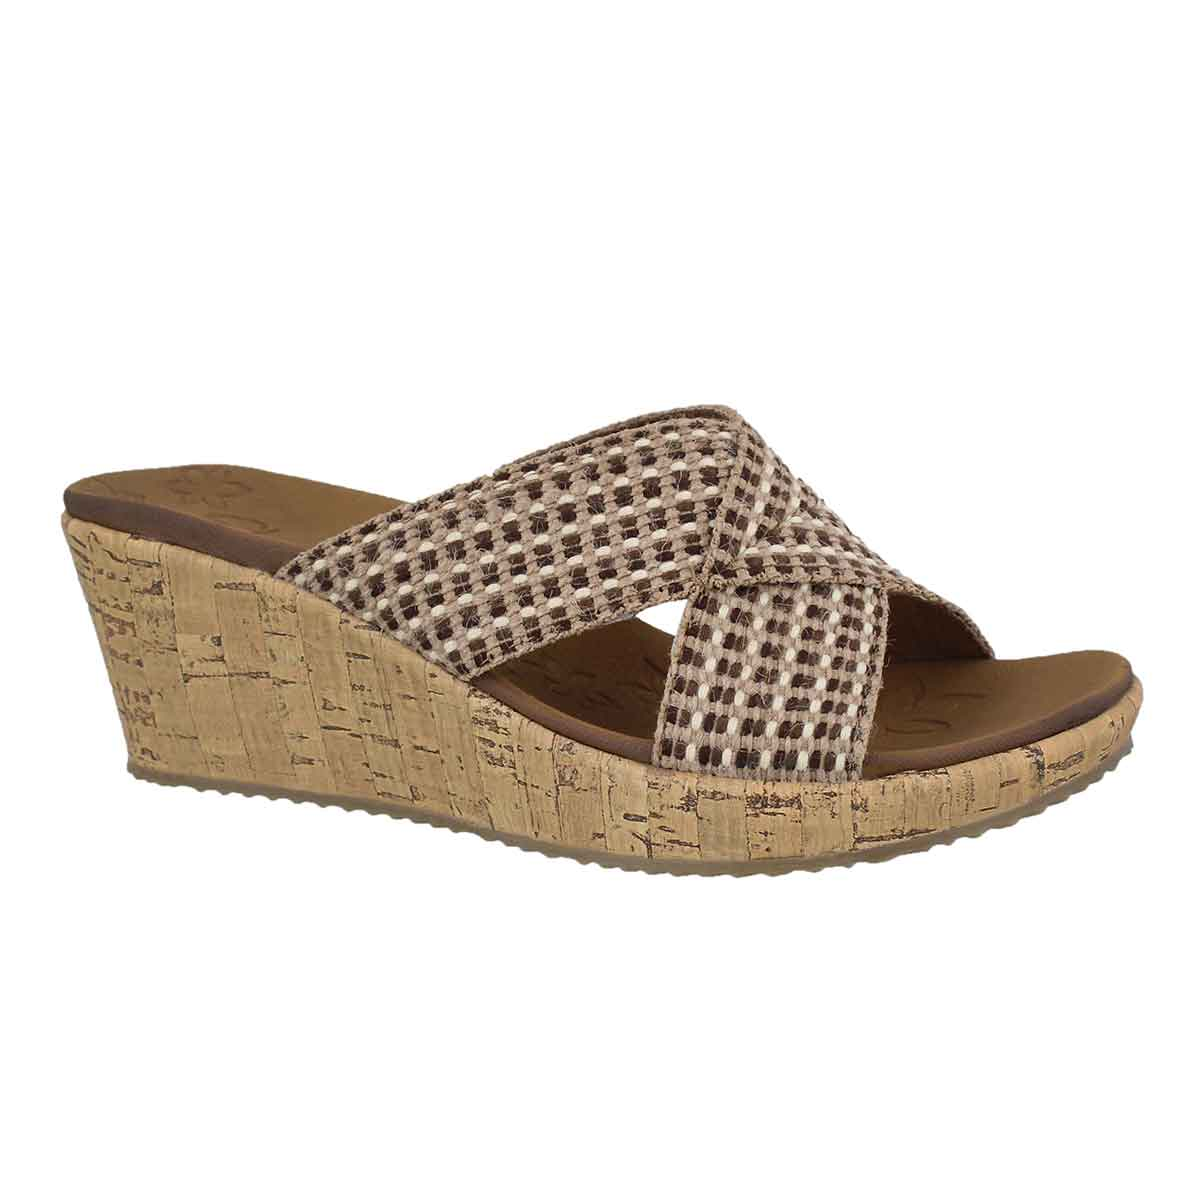 Women's BEVERLEE DELIGHTED natural wedge sandals